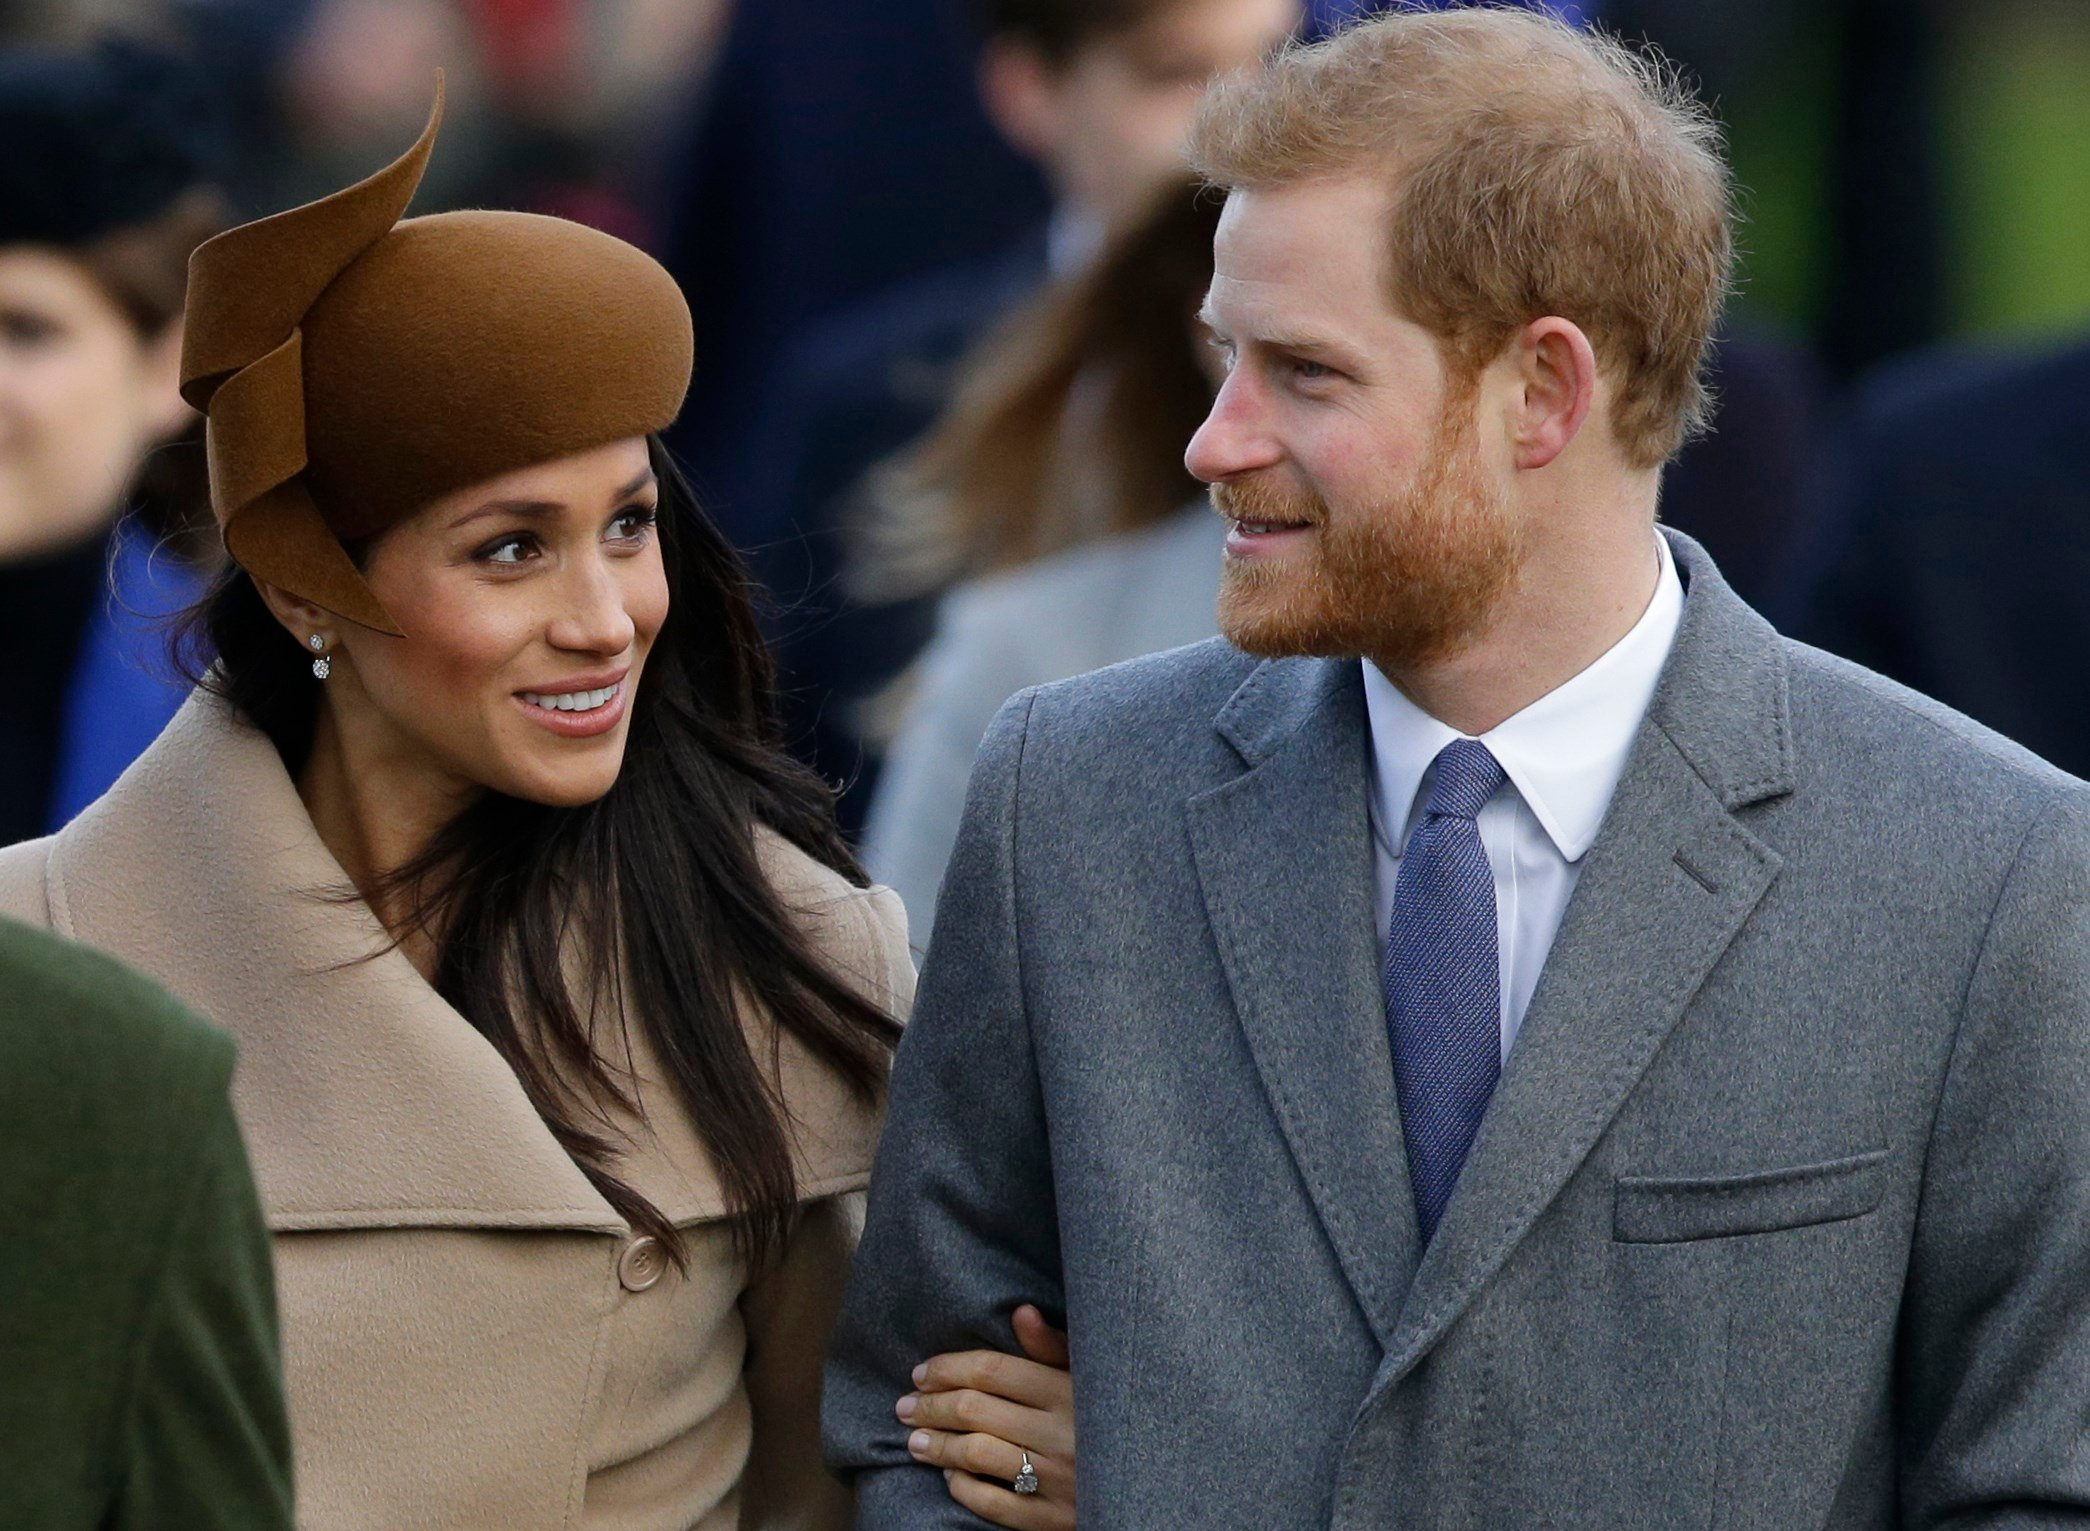 Britain ponders what to do with homeless ahead of royal wedding